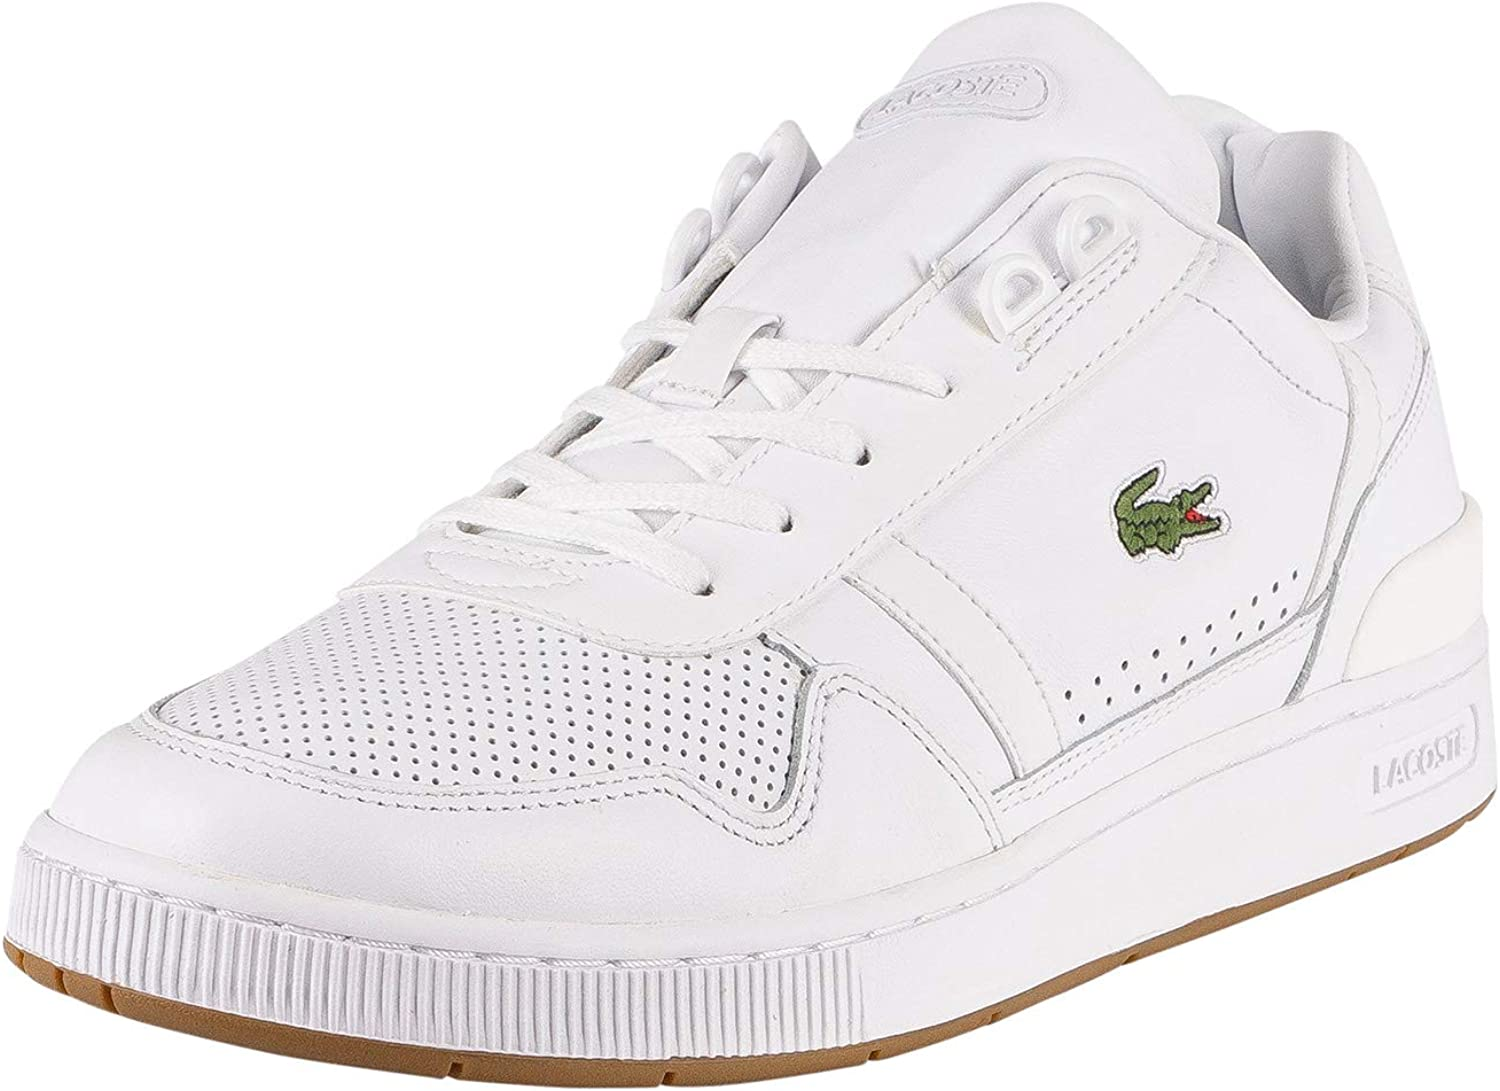 Men/'s Lacoste Thrill Leather Lace up Comfort Trainers in White